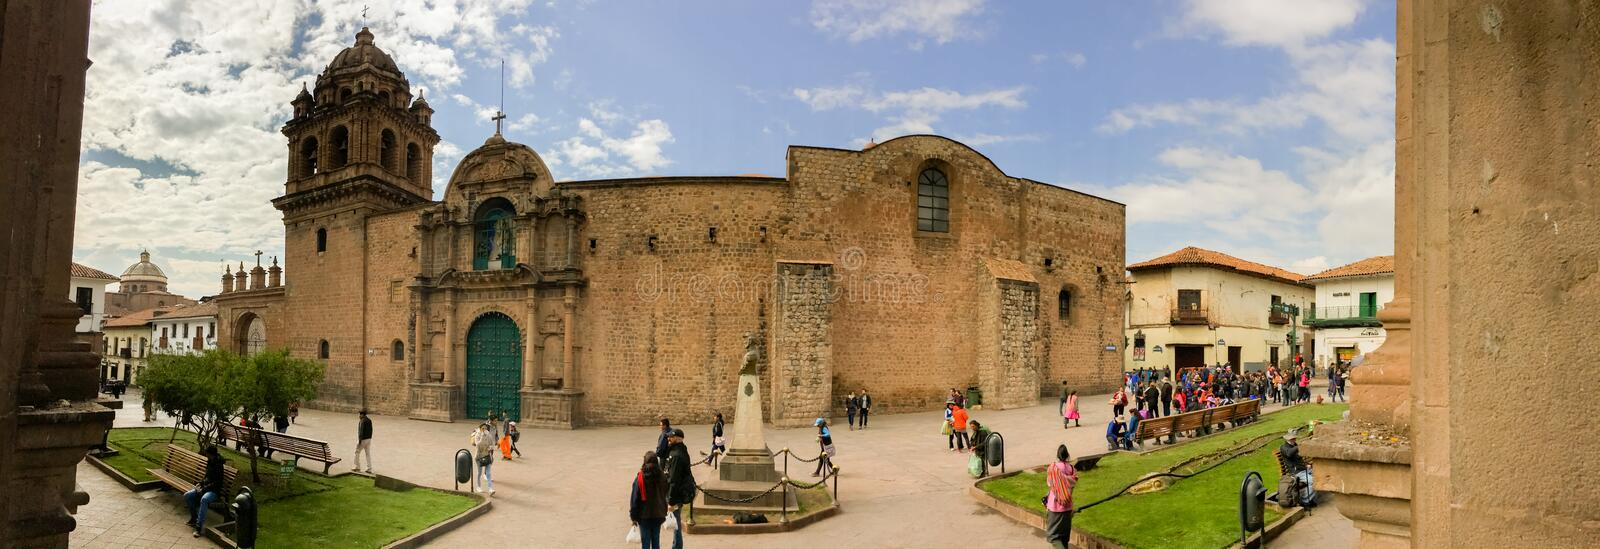 Cusco Architecture Panoramic. CUSCO - SEPTEMBER 02: Tourists, locals and architecture close-ups on the streets of Cusco, Peru on September 2nd, 2016 stock photos